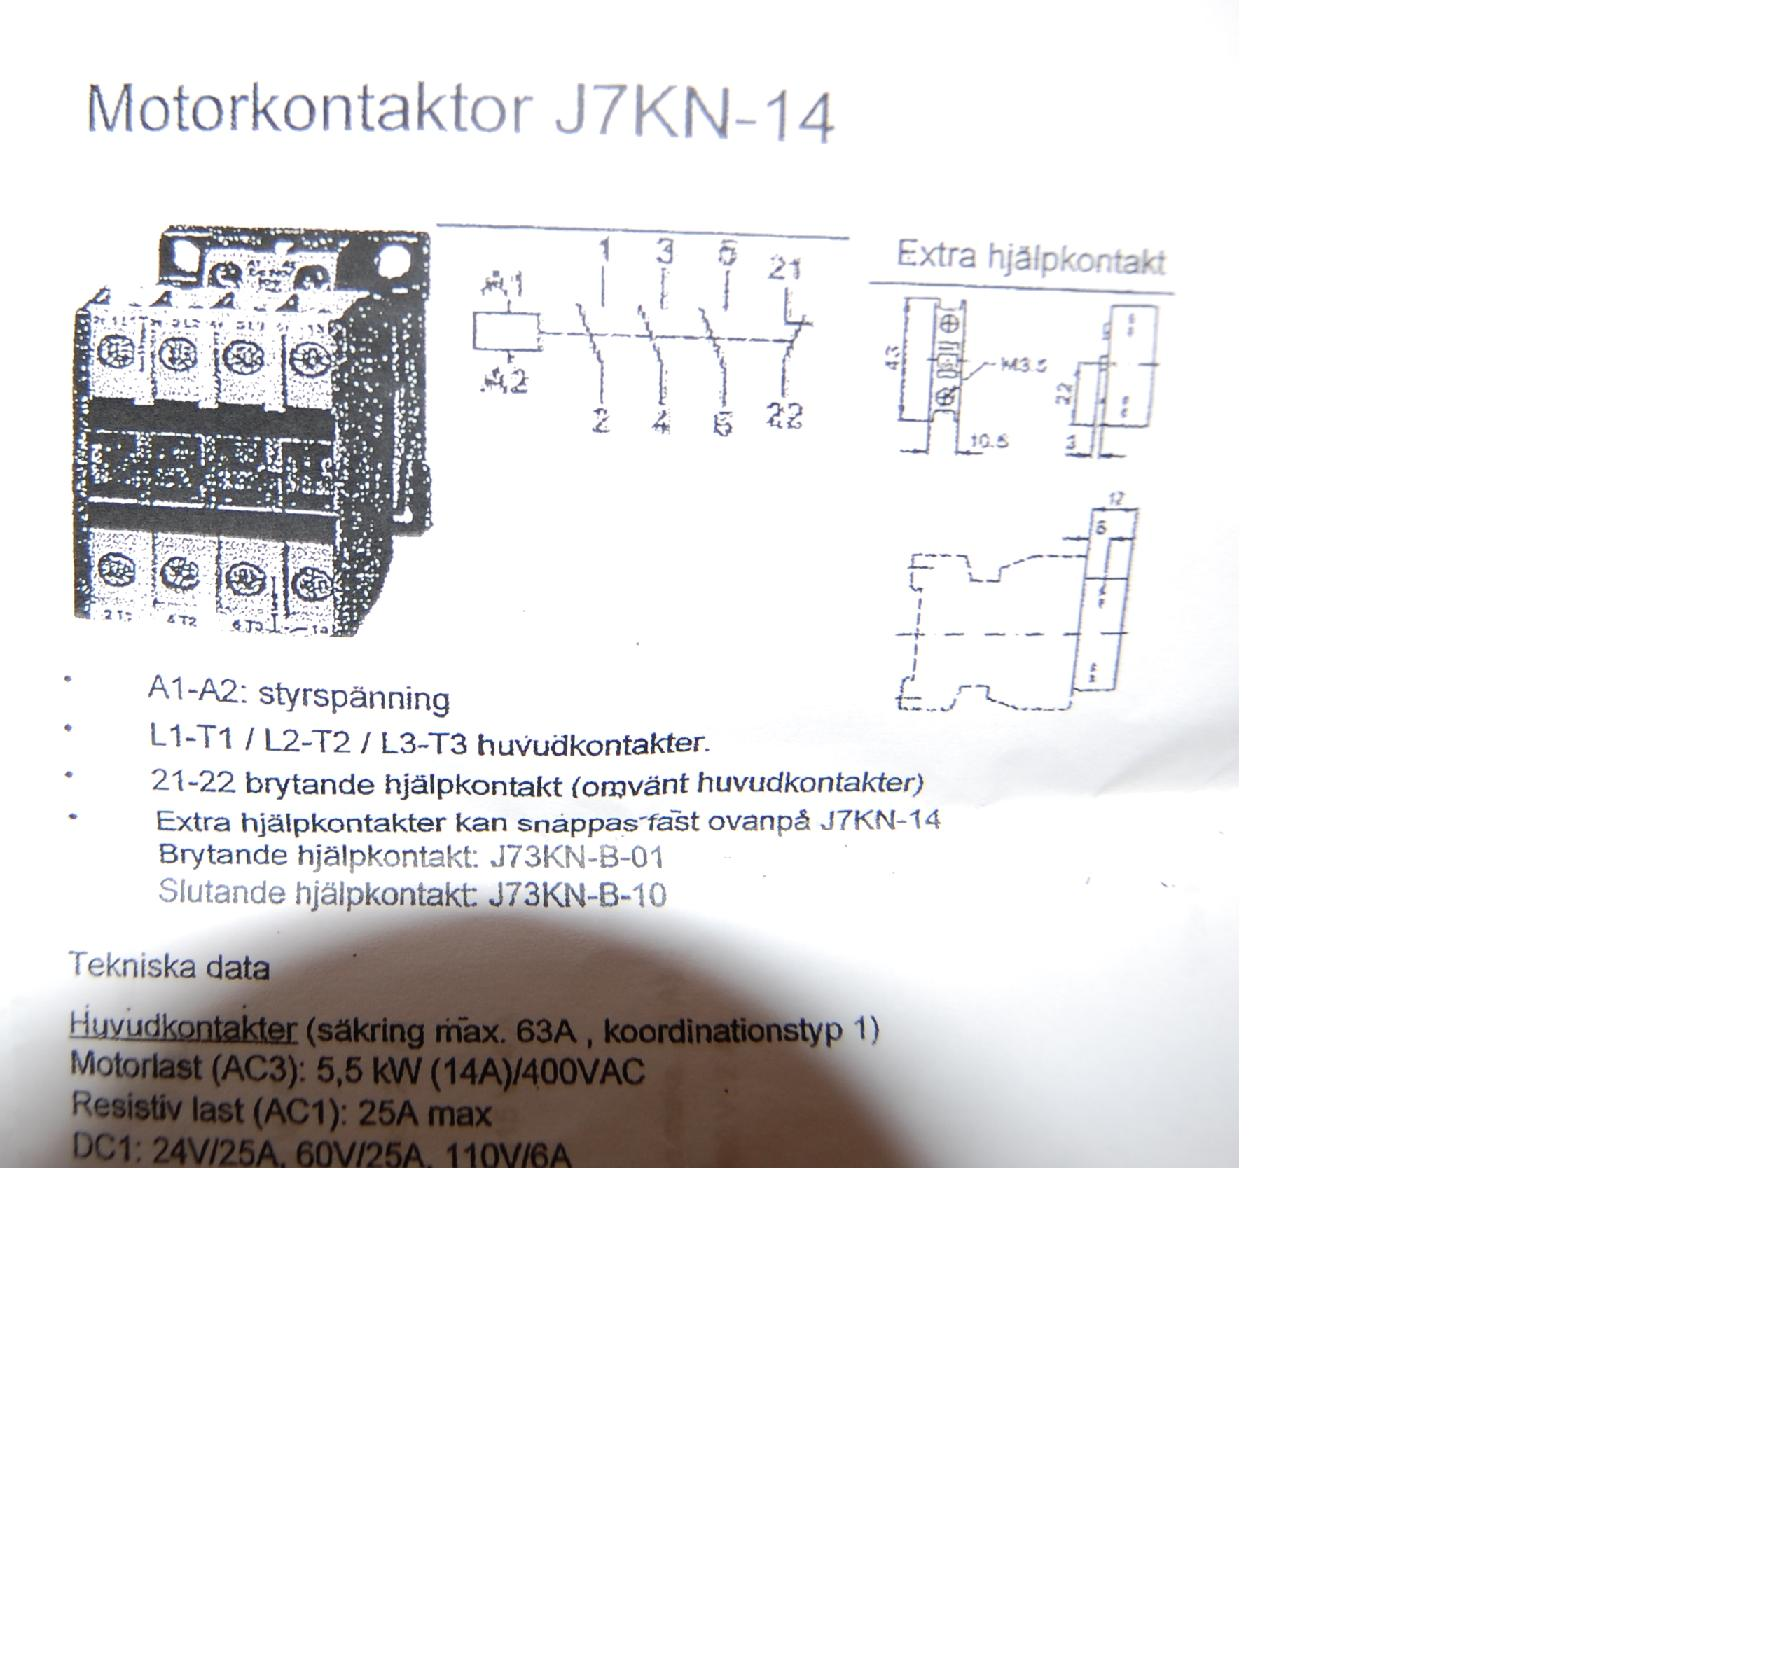 contactor wiring diagram a1 a2 wiring diagrams contactor wiring diagram a1 a2 schematics and diagrams